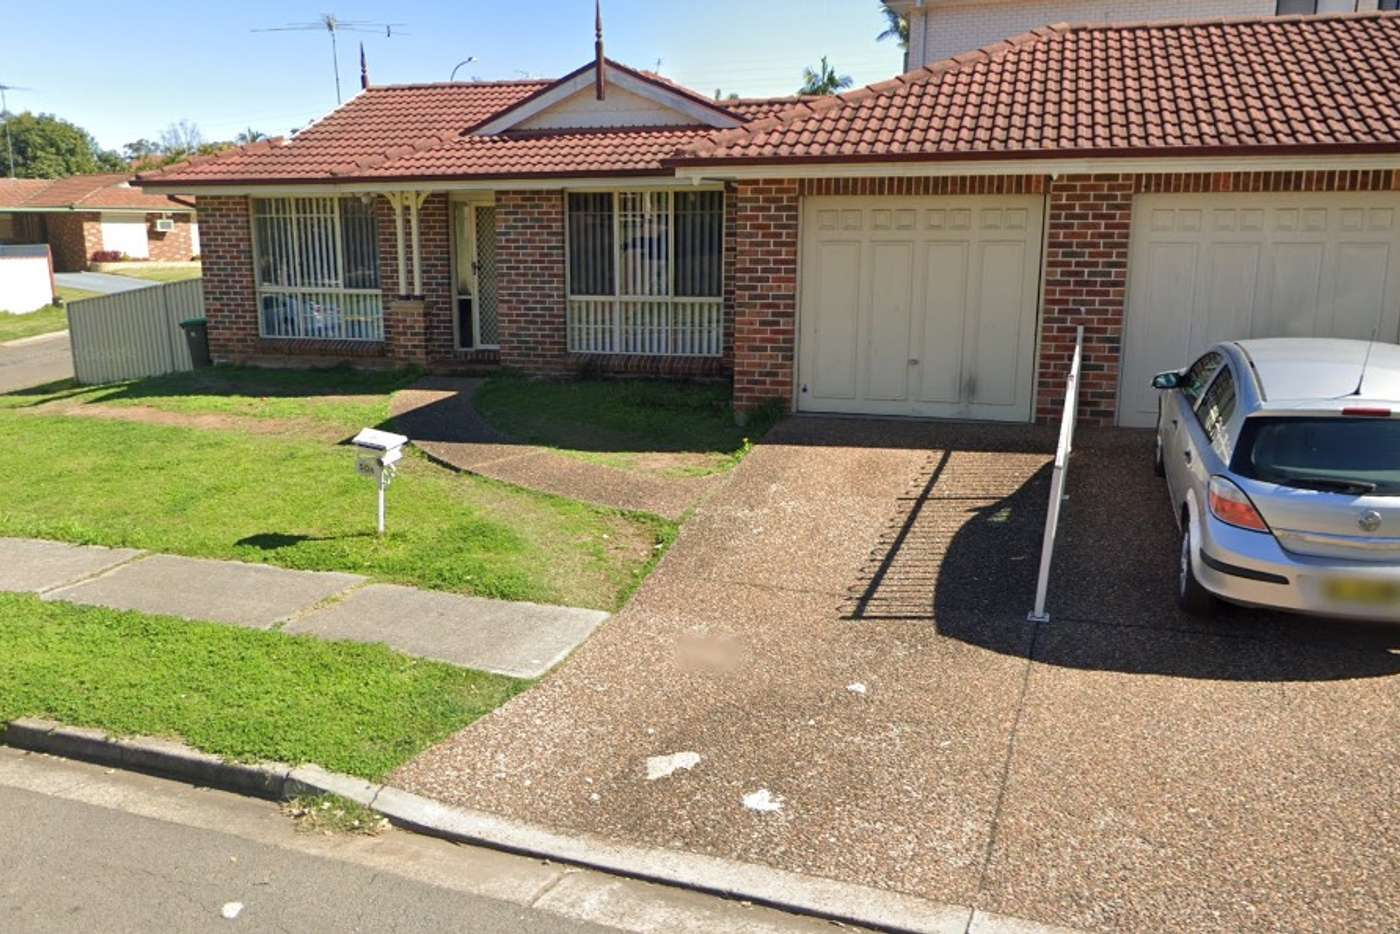 Main view of Homely house listing, 50A Sanderling Street, Hinchinbrook NSW 2168